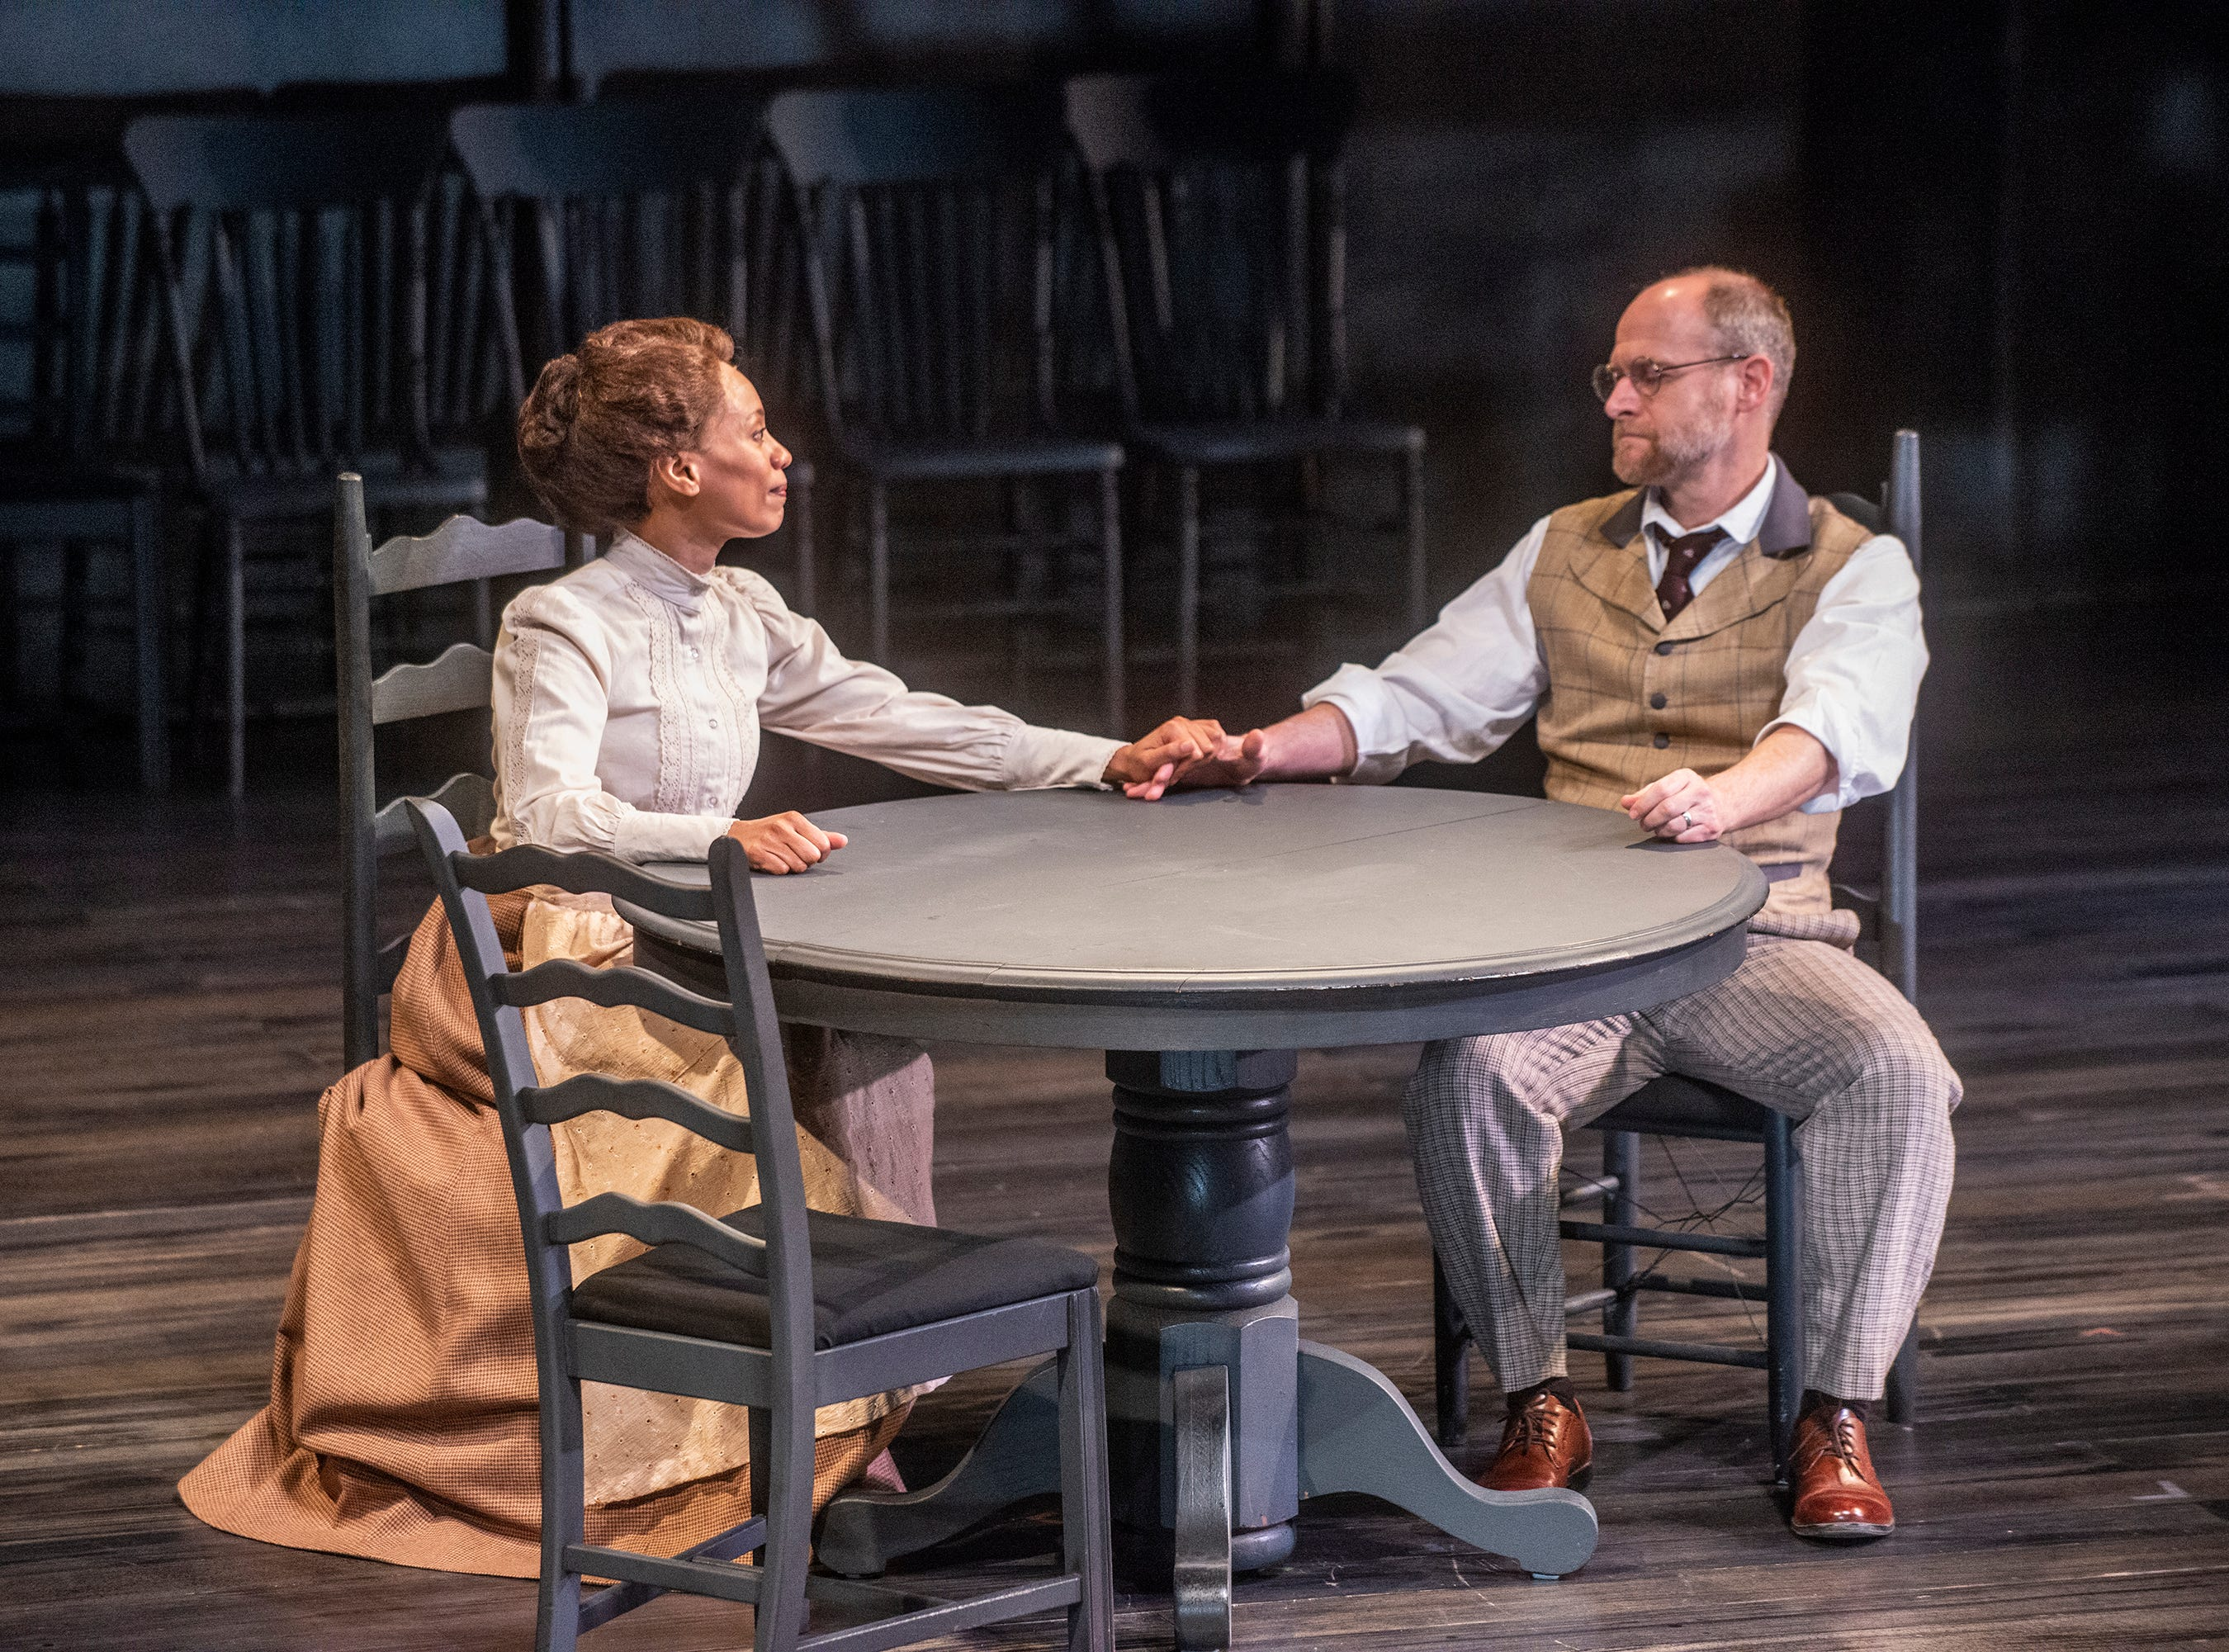 Christopher Gerson and Nehassaiu deGannes as Mr. and Mrs. Gibbs in Our Town. Our Town dress rehearsal Thursday, Feb. 21, 2019, at Alabama Shakespeare Festival in Montgomery, Ala.